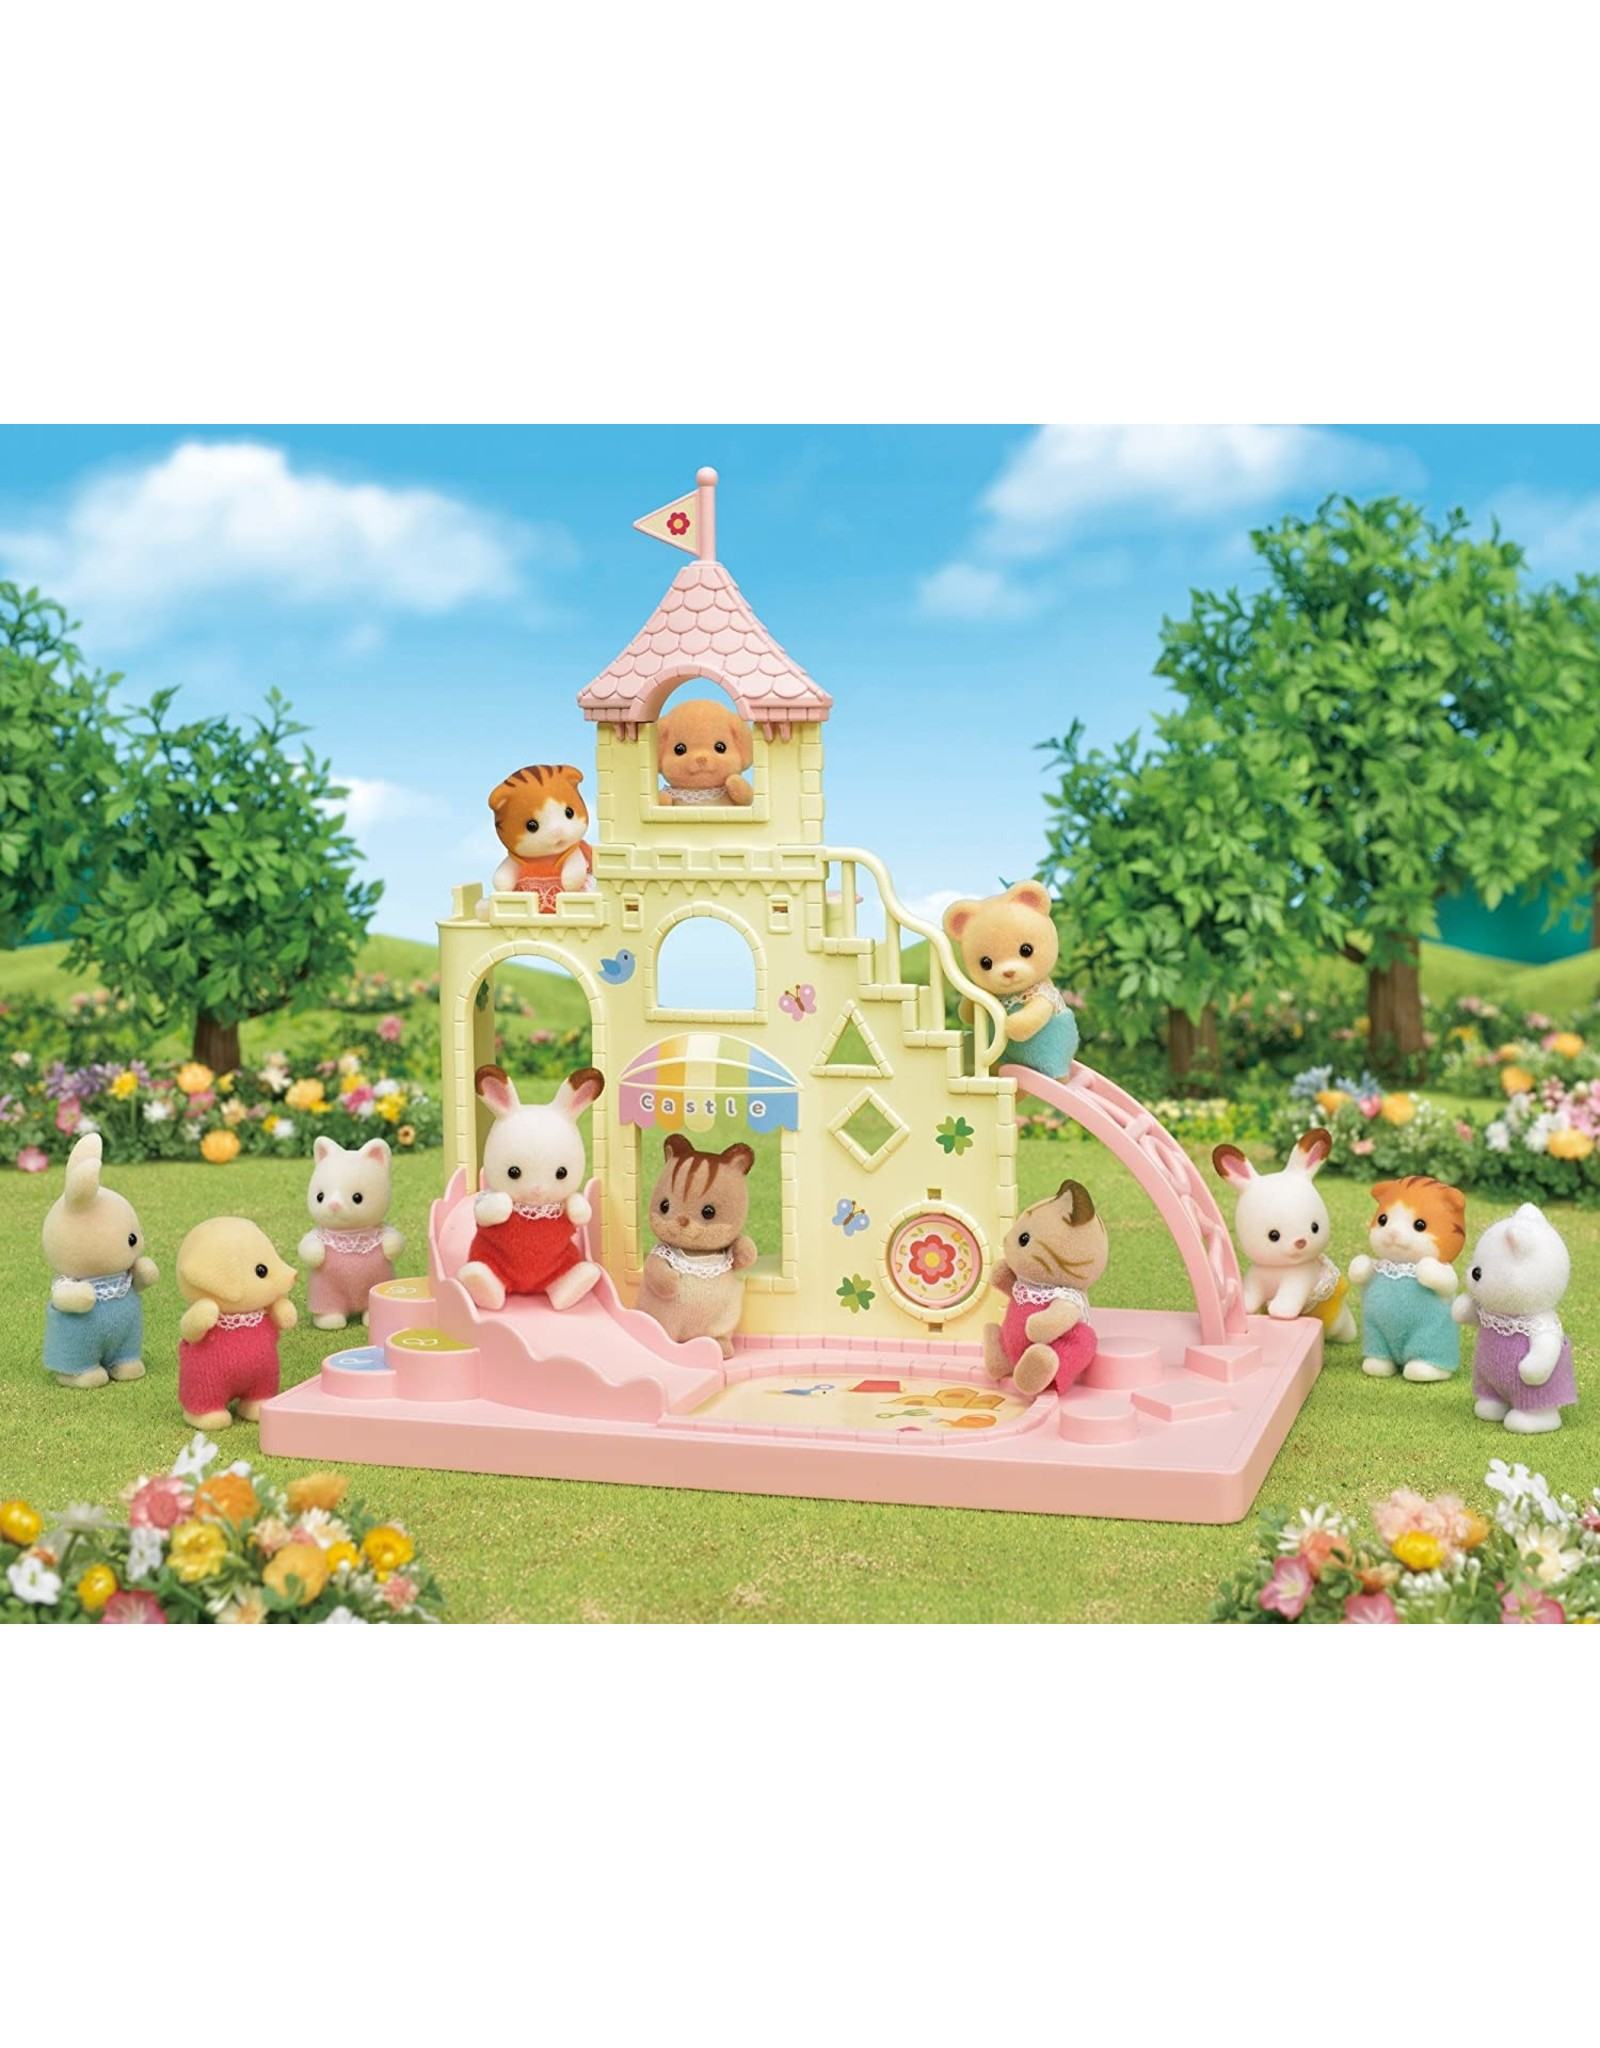 Calico Critters Calico Critters Baby Castle Playground